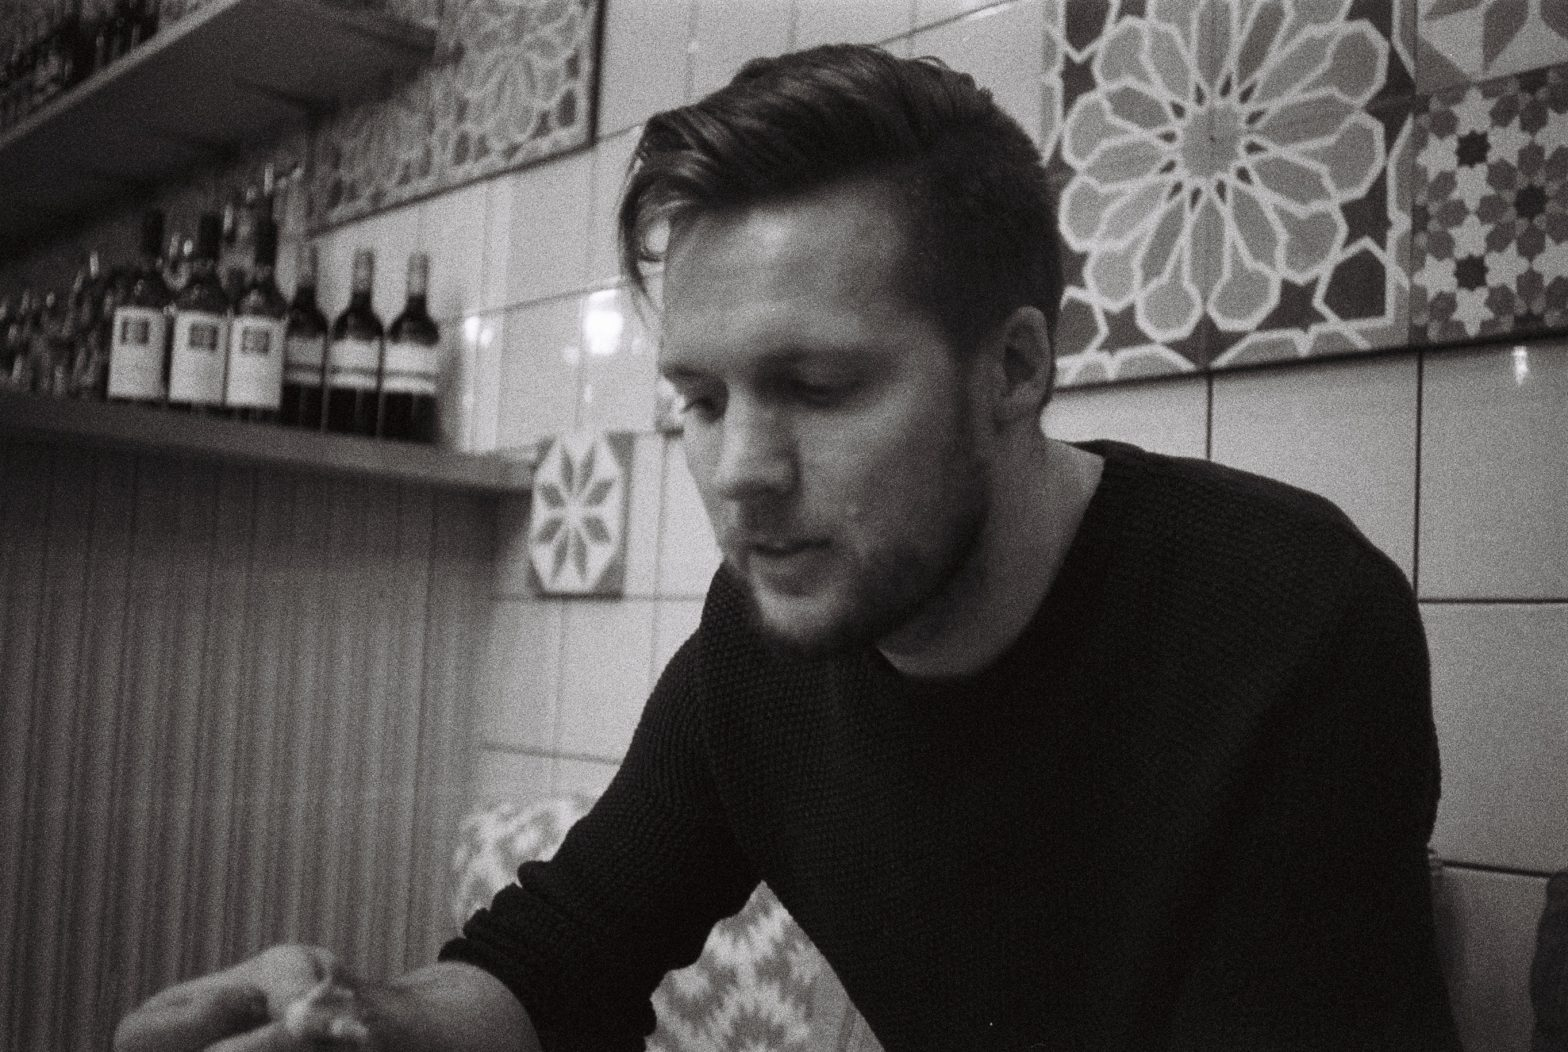 A black and white portrait of coxy (Matt Cox) sitting in front of a tiled wall in a cafe